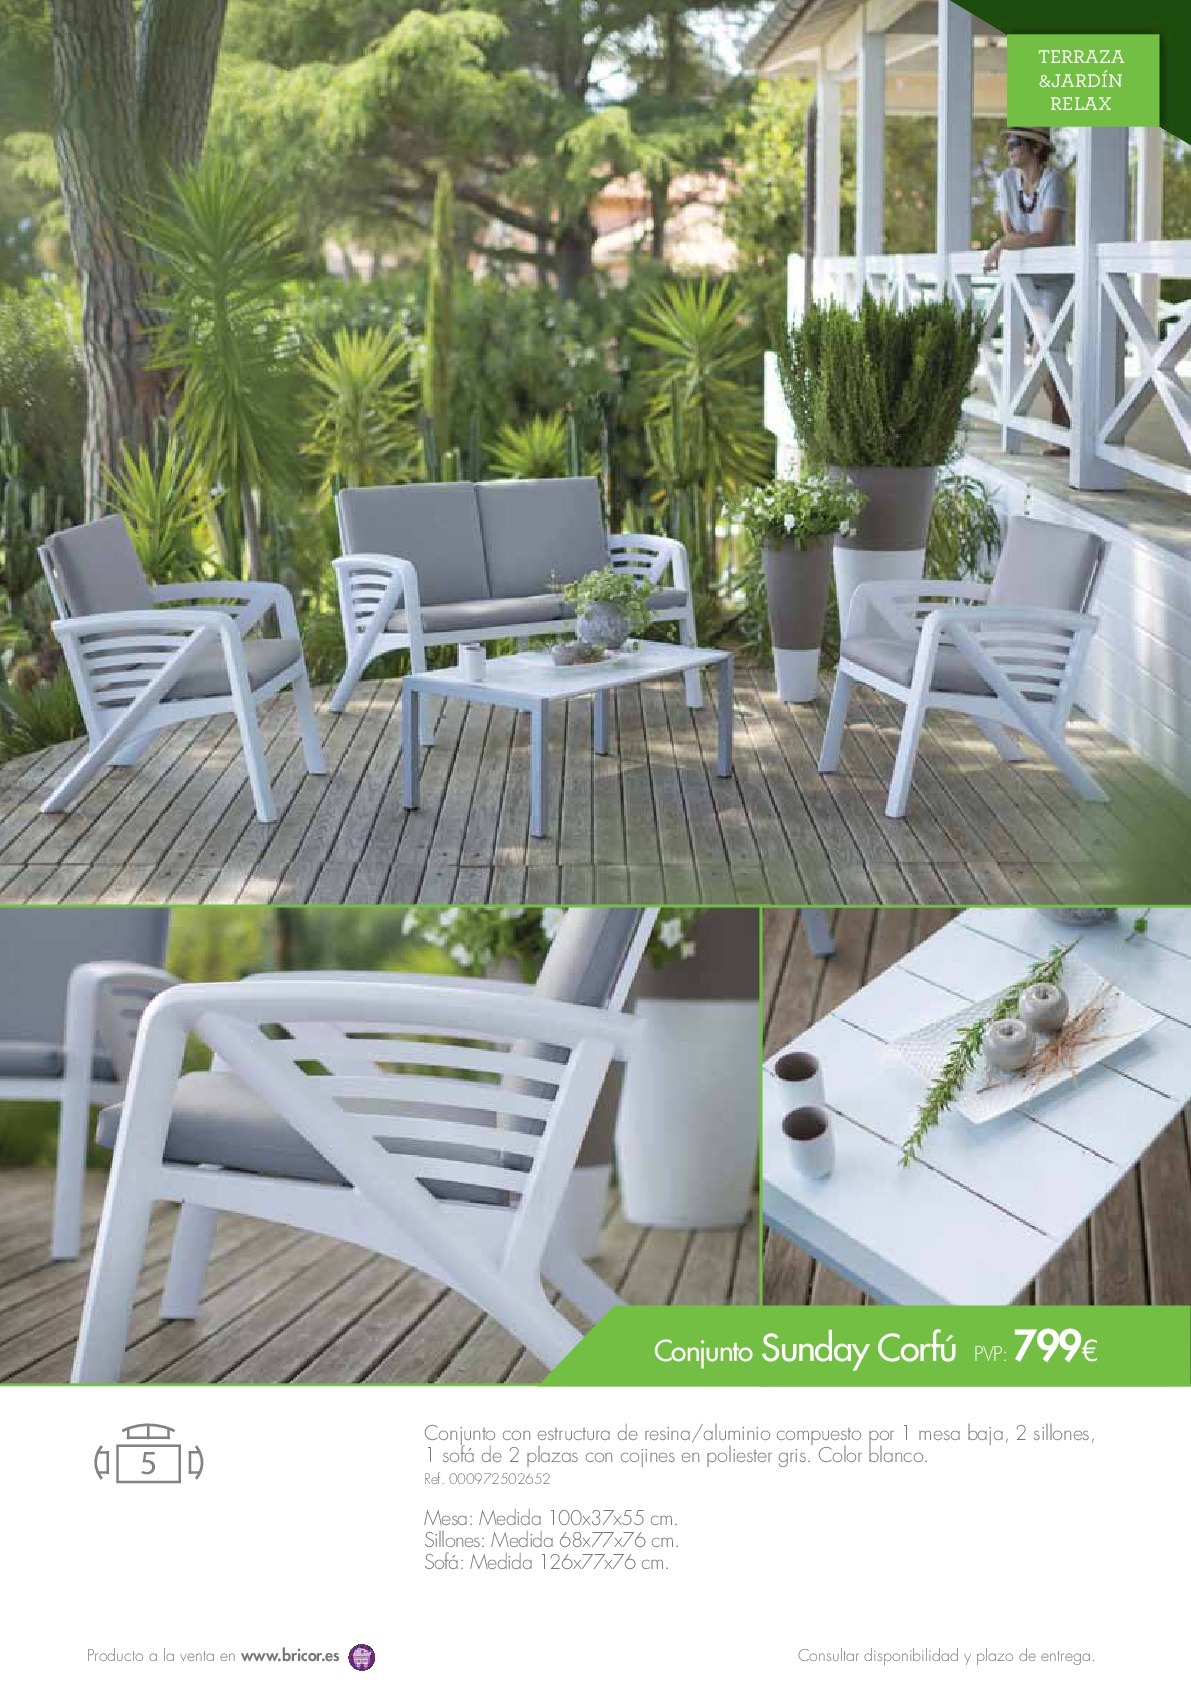 Bricor muebles jardin 201653 revista muebles for Revista jardin 2016